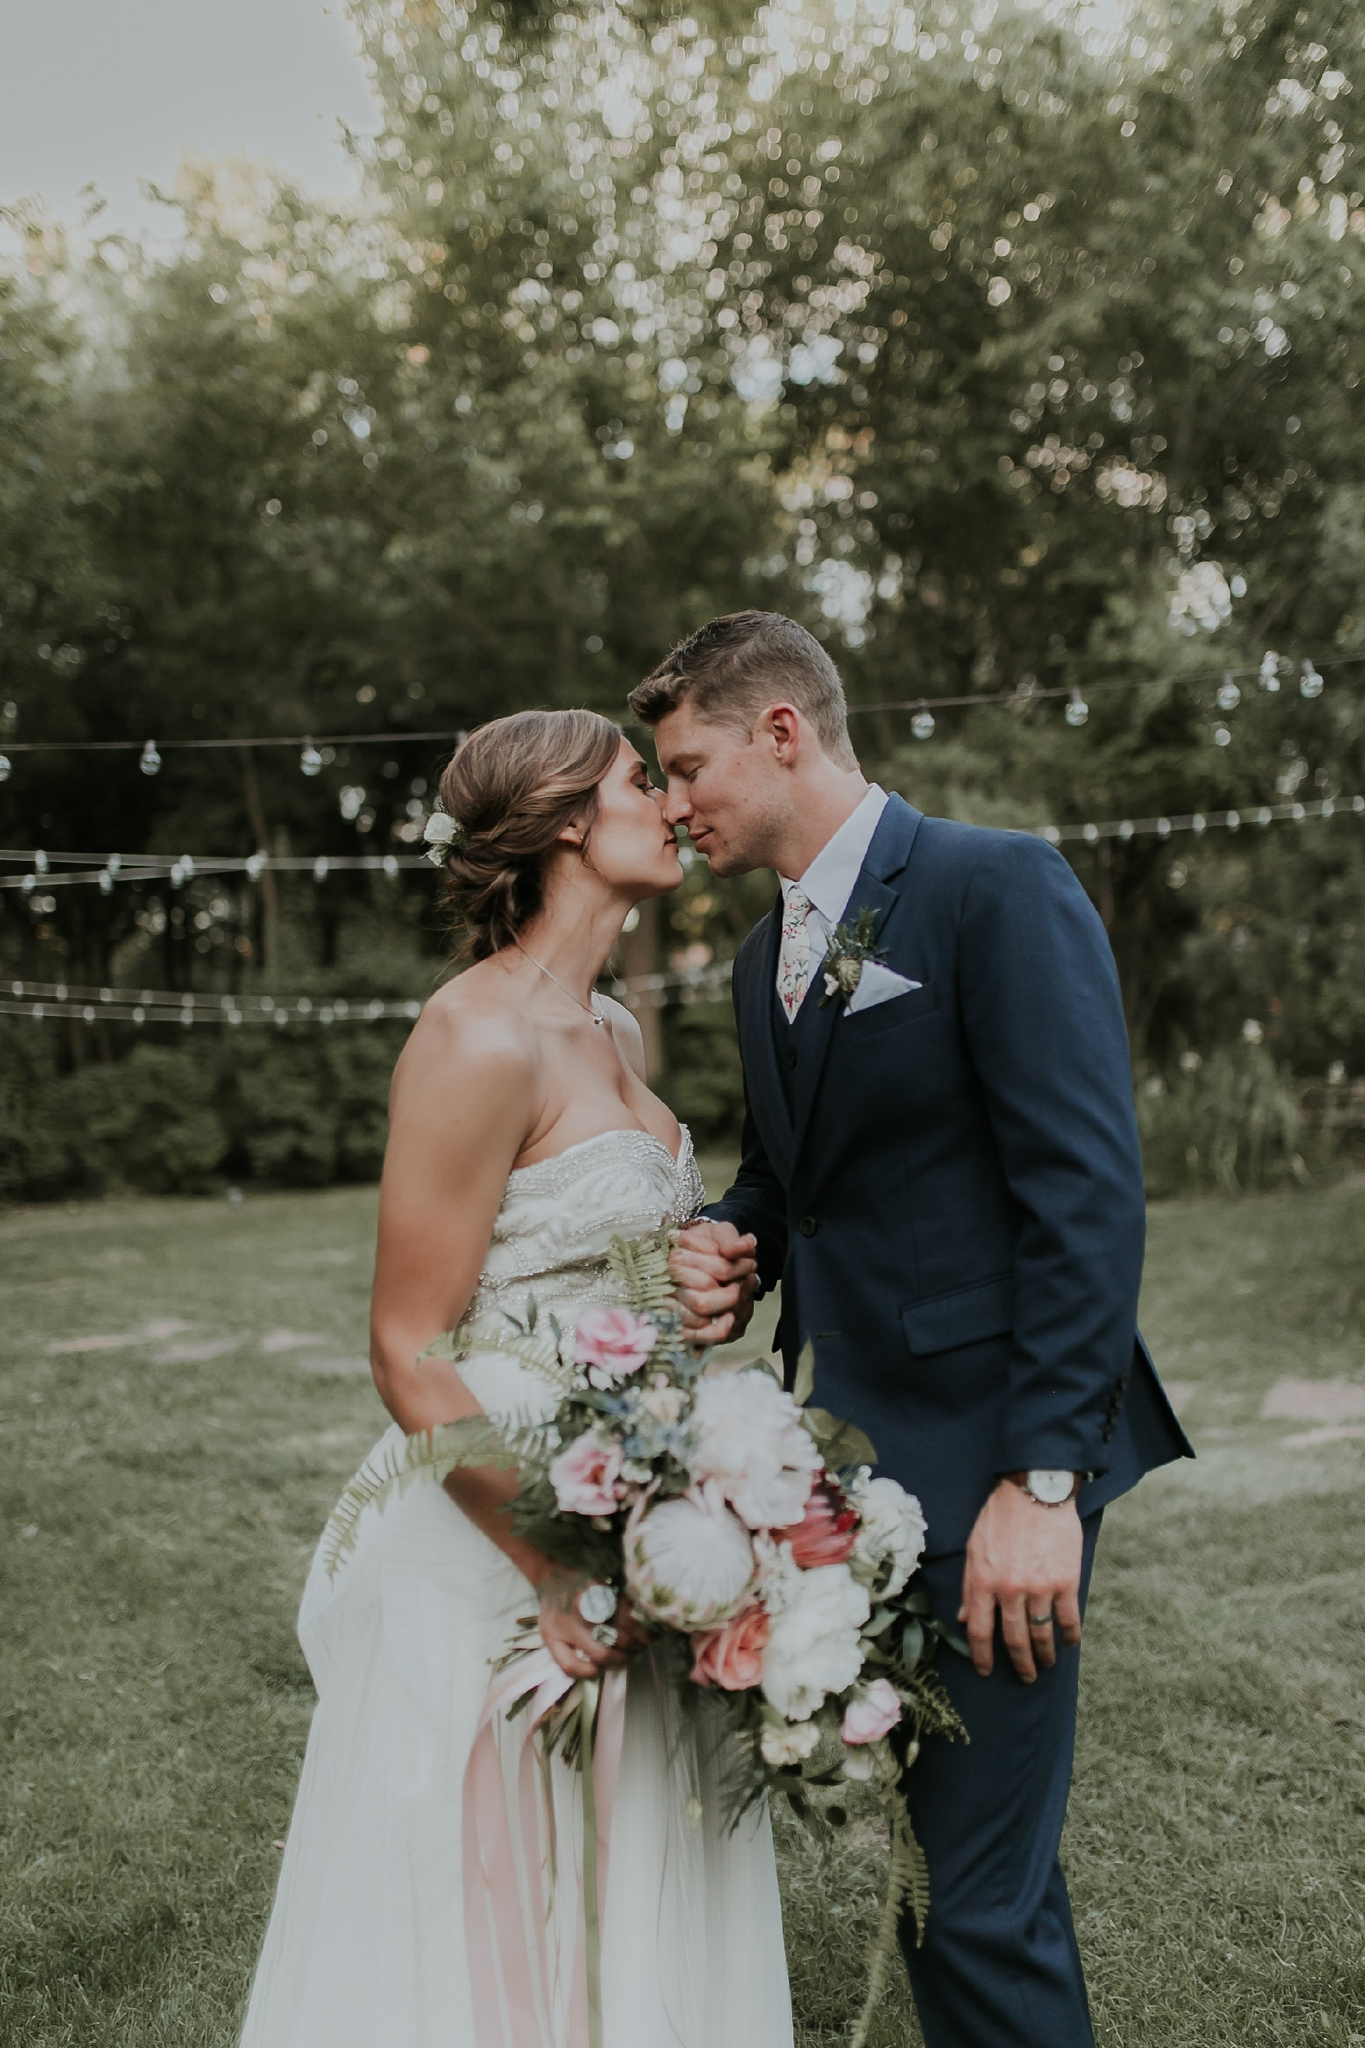 Alicia+lucia+photography+-+albuquerque+wedding+photographer+-+santa+fe+wedding+photography+-+new+mexico+wedding+photographer+-+new+mexico+wedding+-+wedding+vows+-+writing+your+own+vows+-+wedding+inspo_0043.jpg